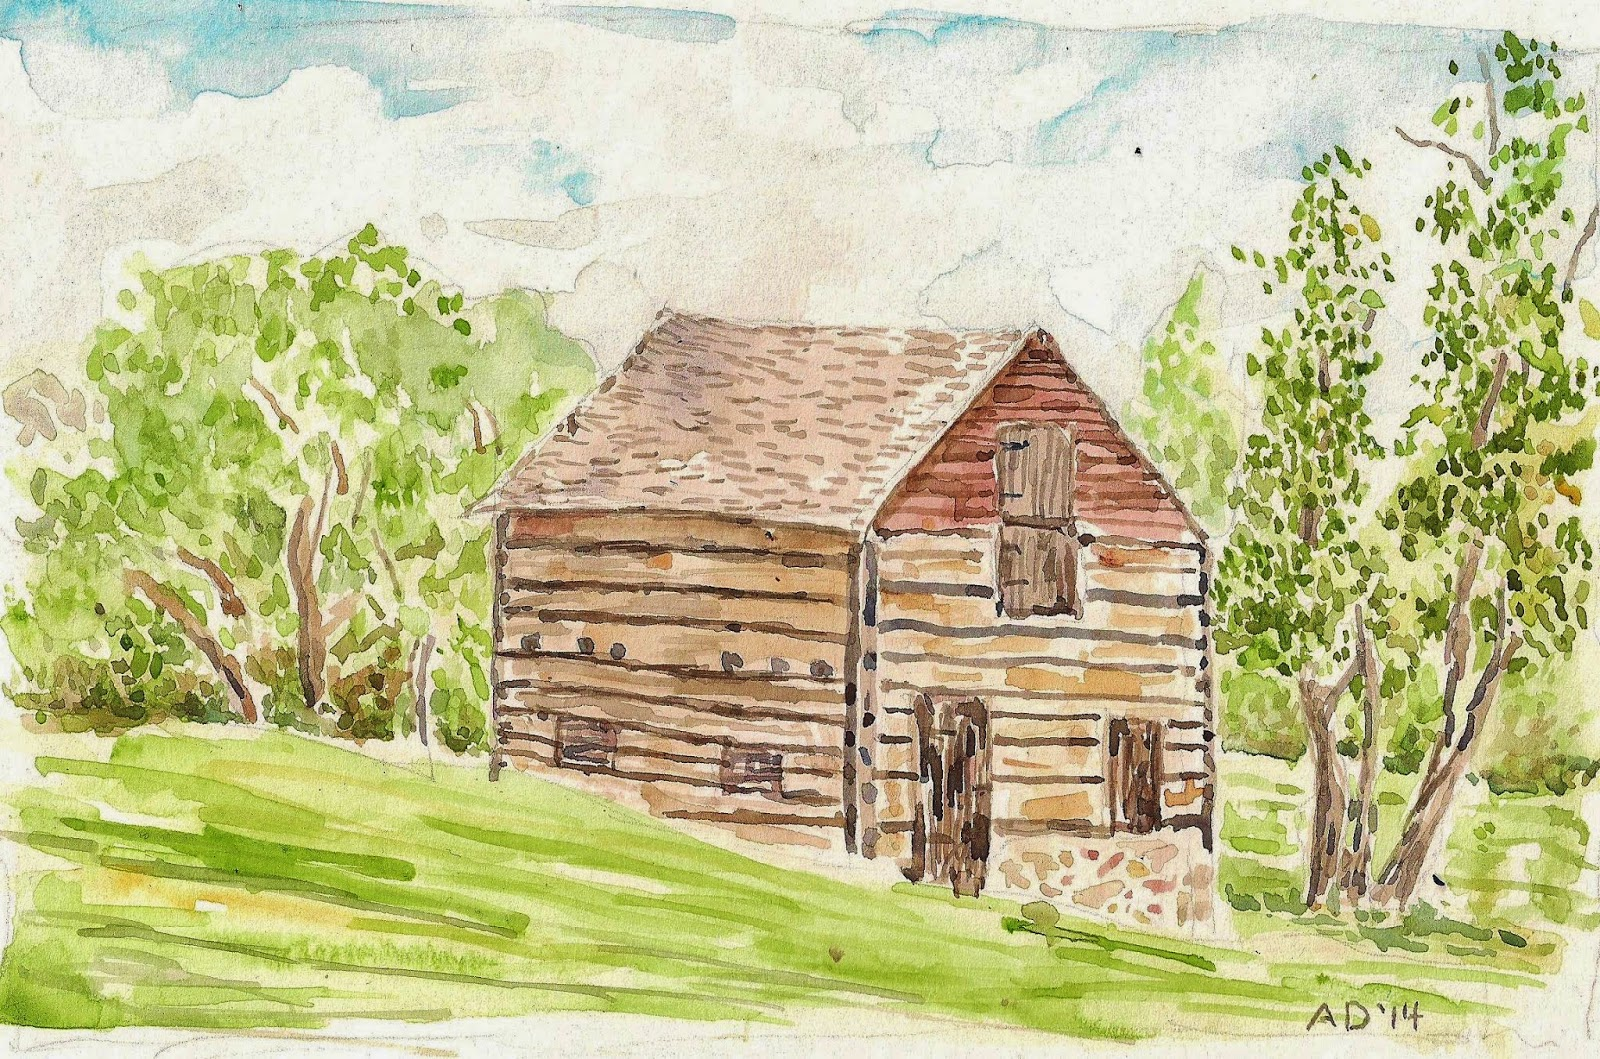 Artist Adron Watercolor Sketch Of An Old Barn